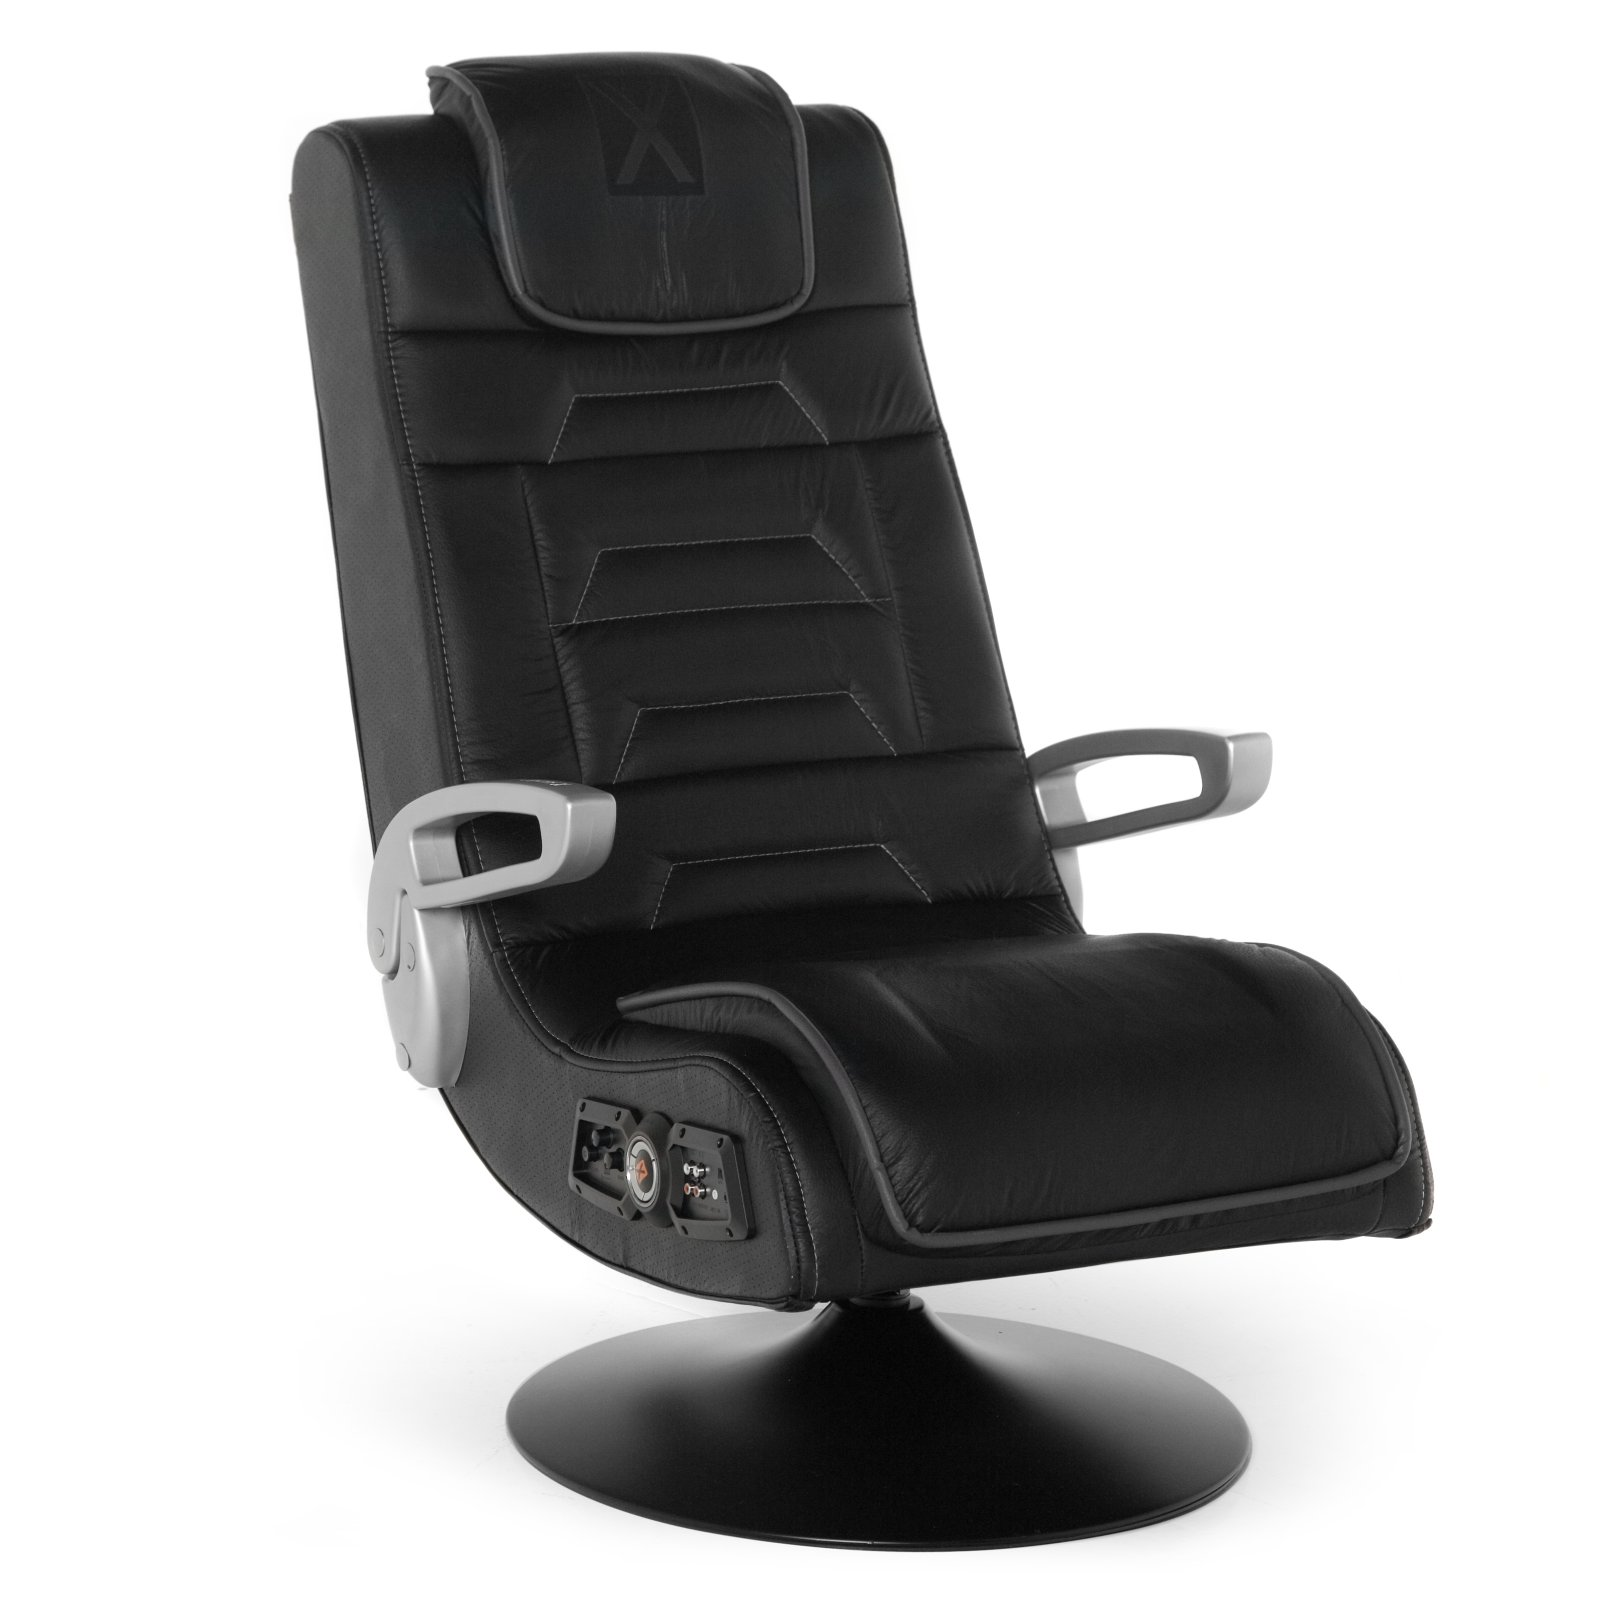 Merveilleux X Rocker 4.1 Pro Series Pedestal Wireless Game Chair 5129601